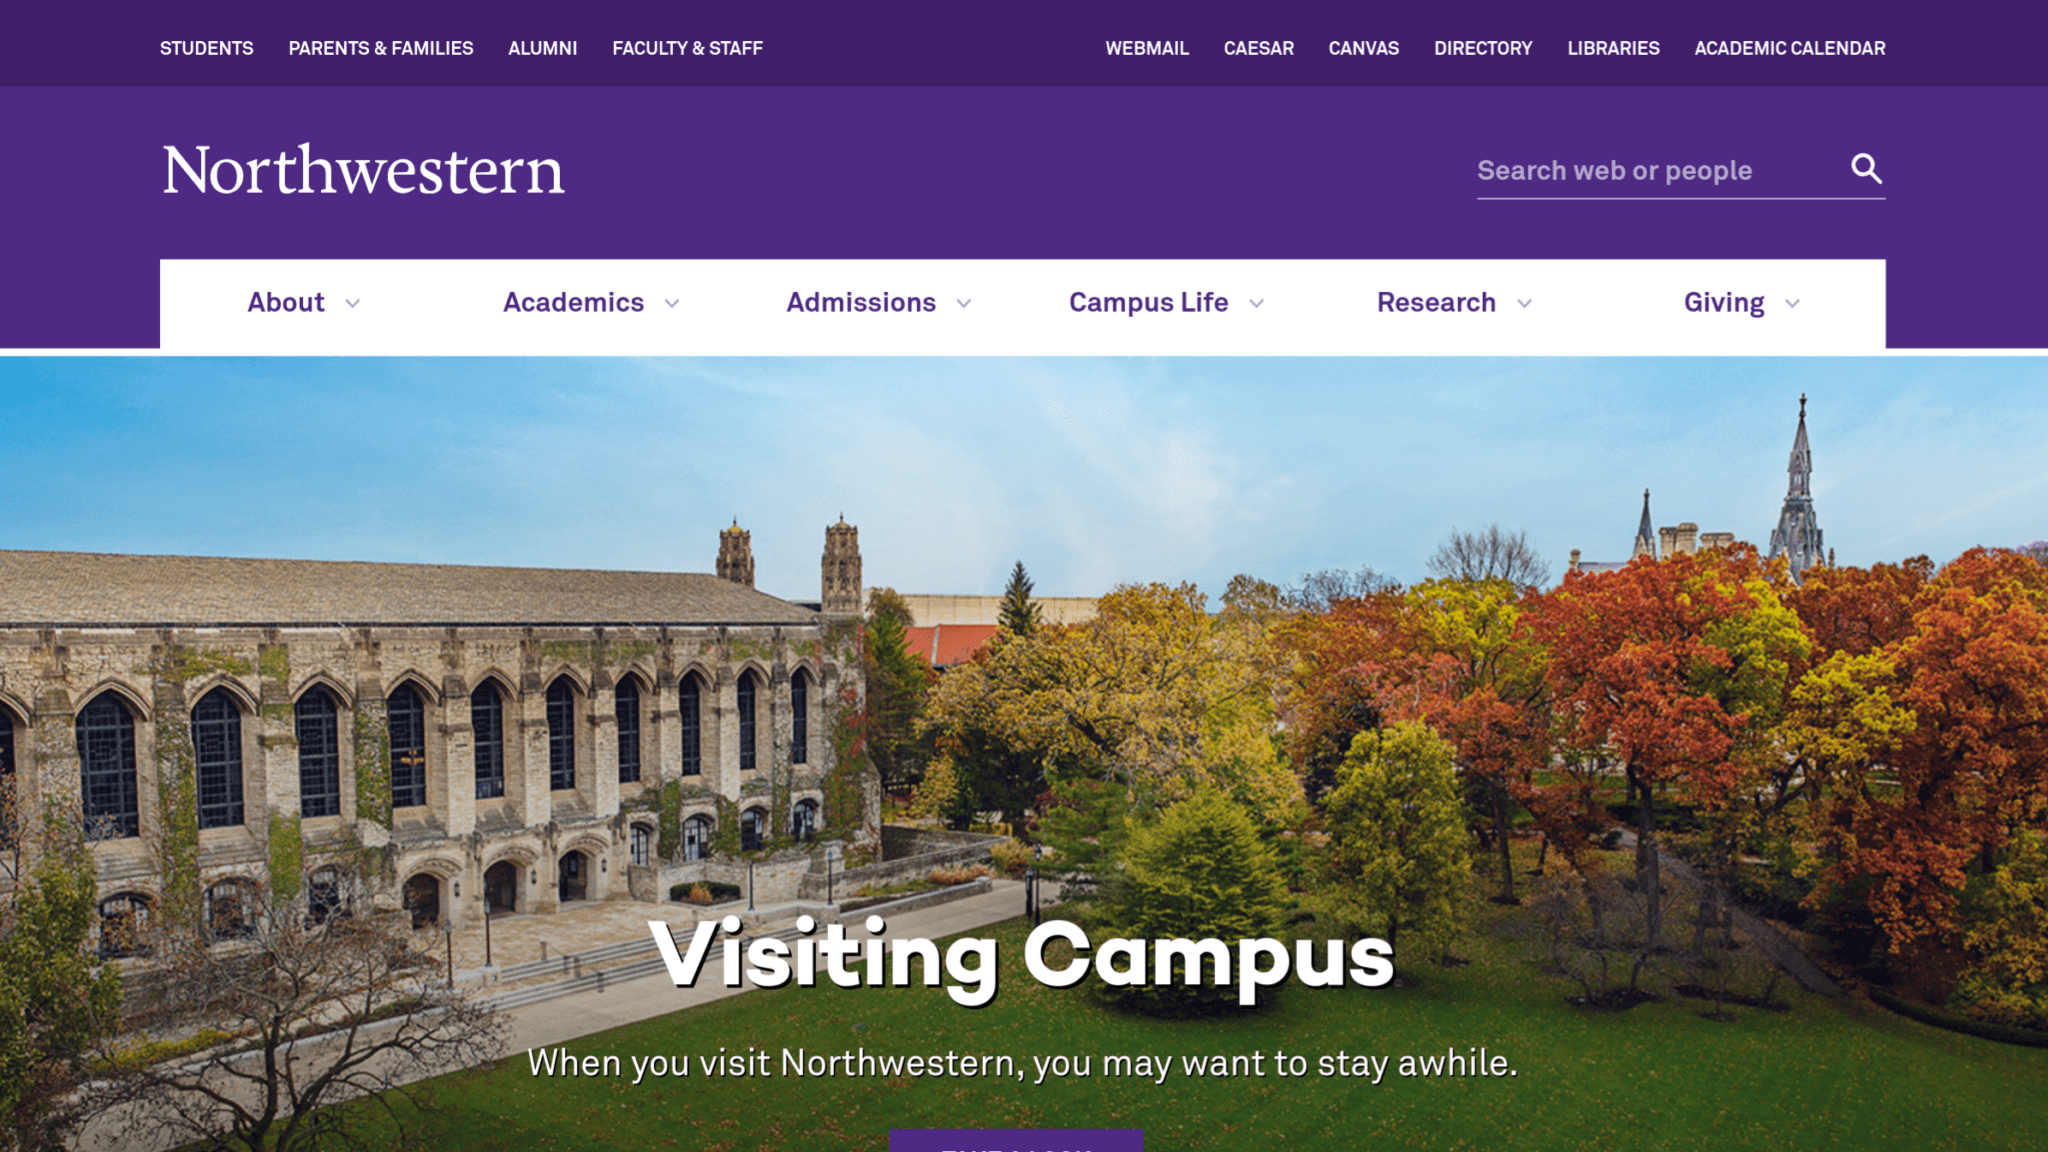 Northwestern University (northwestern.edu)